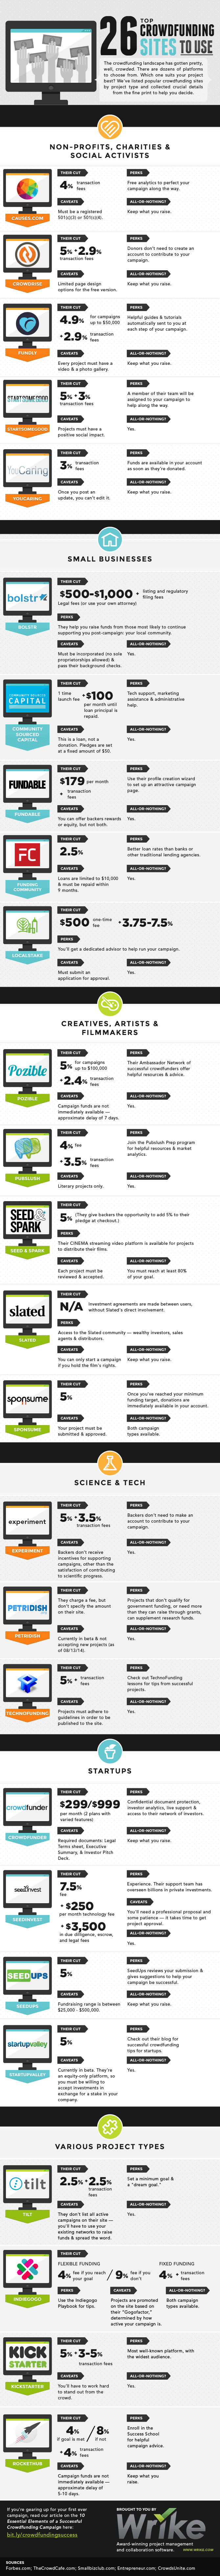 26 Top Crowdfunding Sites to Use for Your Next Campaign #infographic